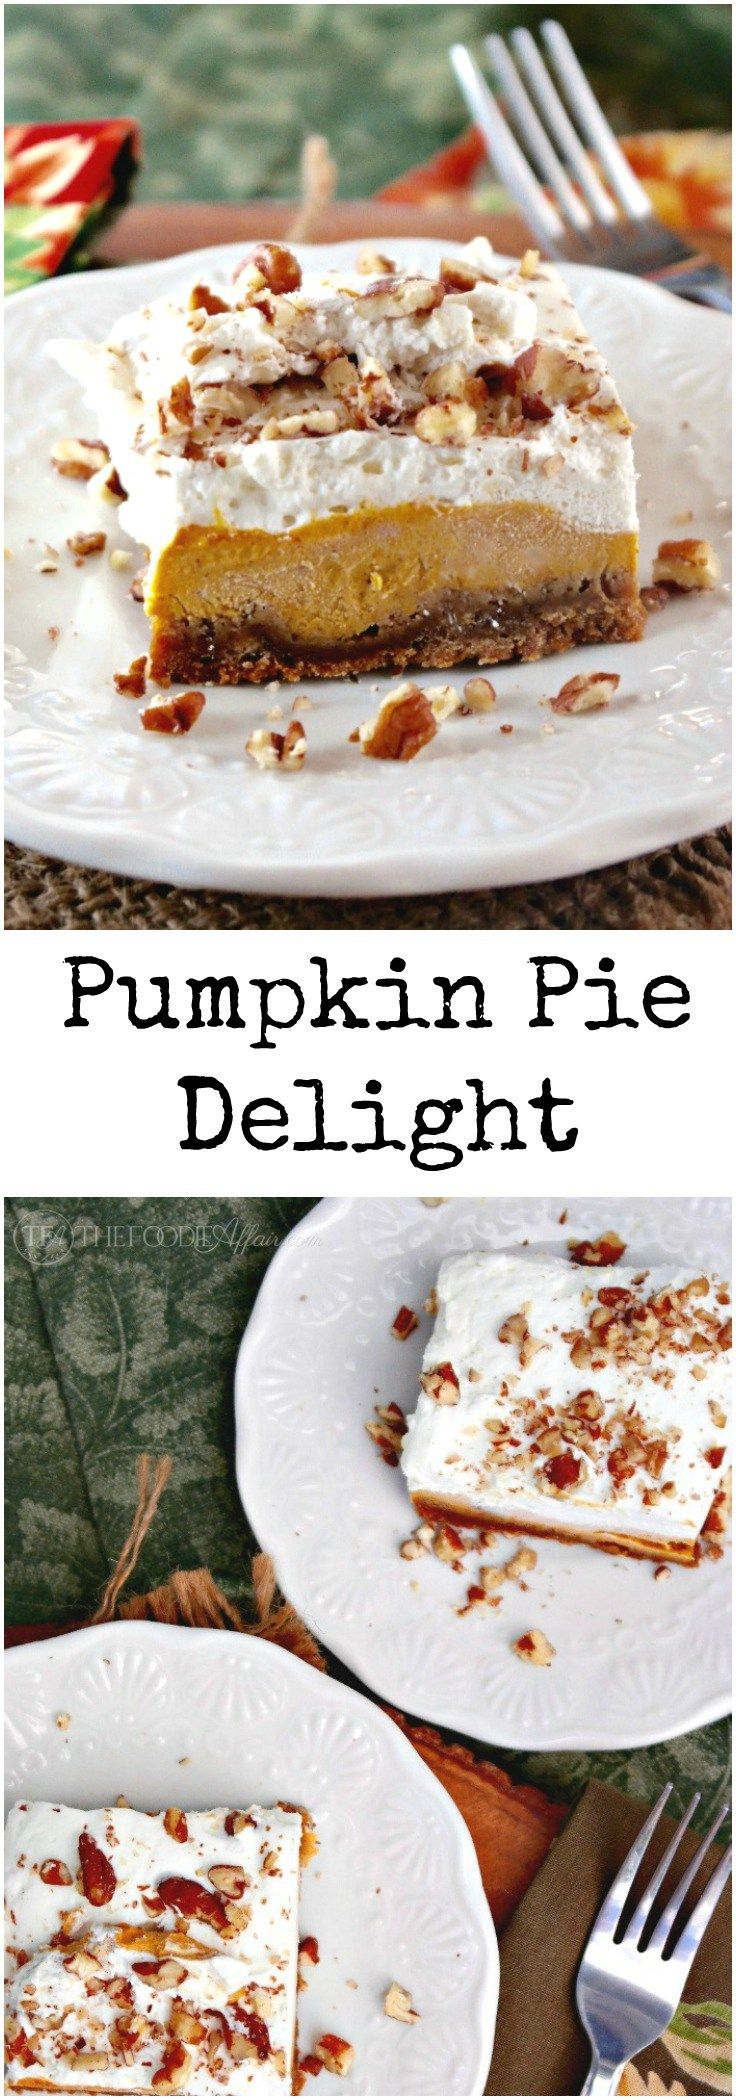 Light and airy pumpkin delight dessert made without pre-packaged jello. Three layers of delicious flavors - gingersnap crust, creamy pumpkin filling and fresh whipped cream! #pumpkin #dessert #thanksgiving